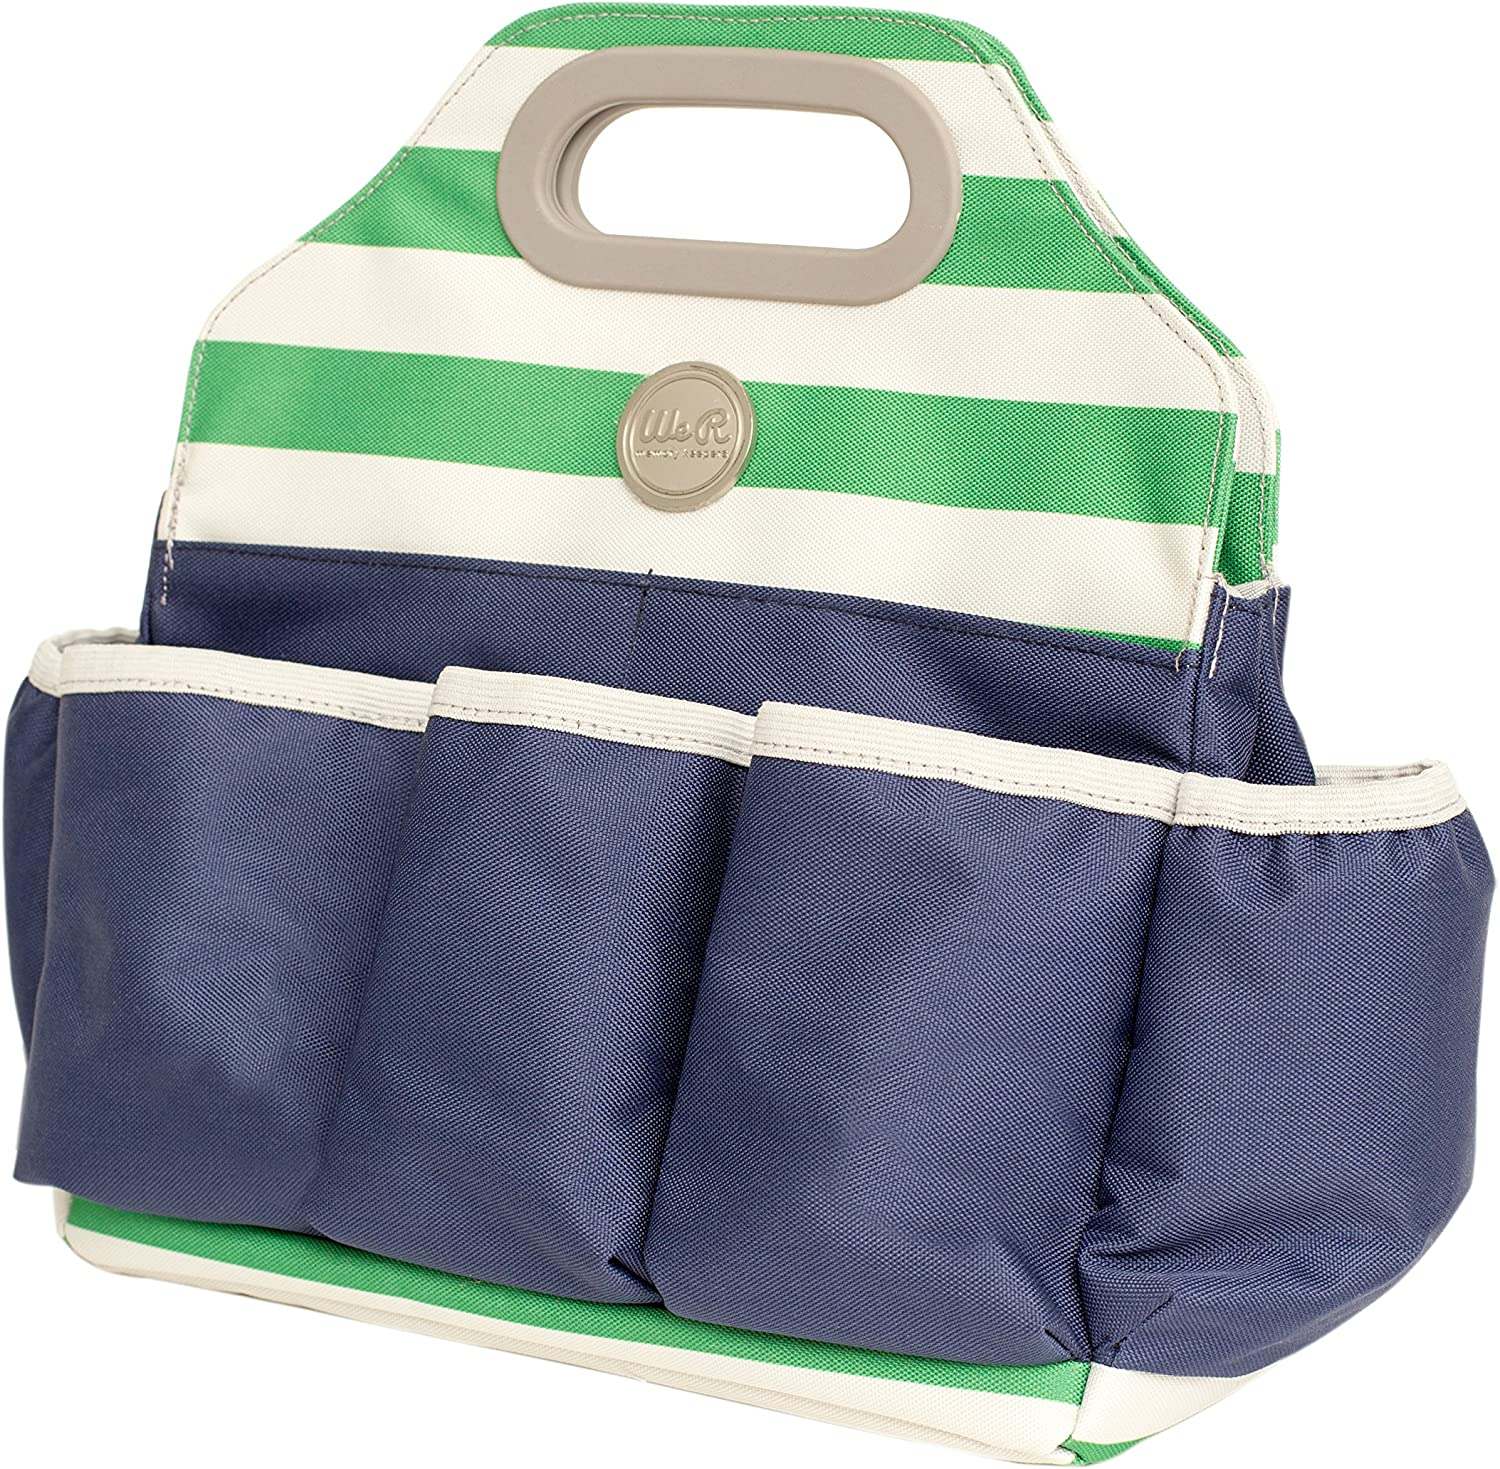 We R Memory Keepers Crafter 's Bag-Navy, andere, Mehrfarbig B011Q183B4 B011Q183B4 B011Q183B4 | Neues Produkt